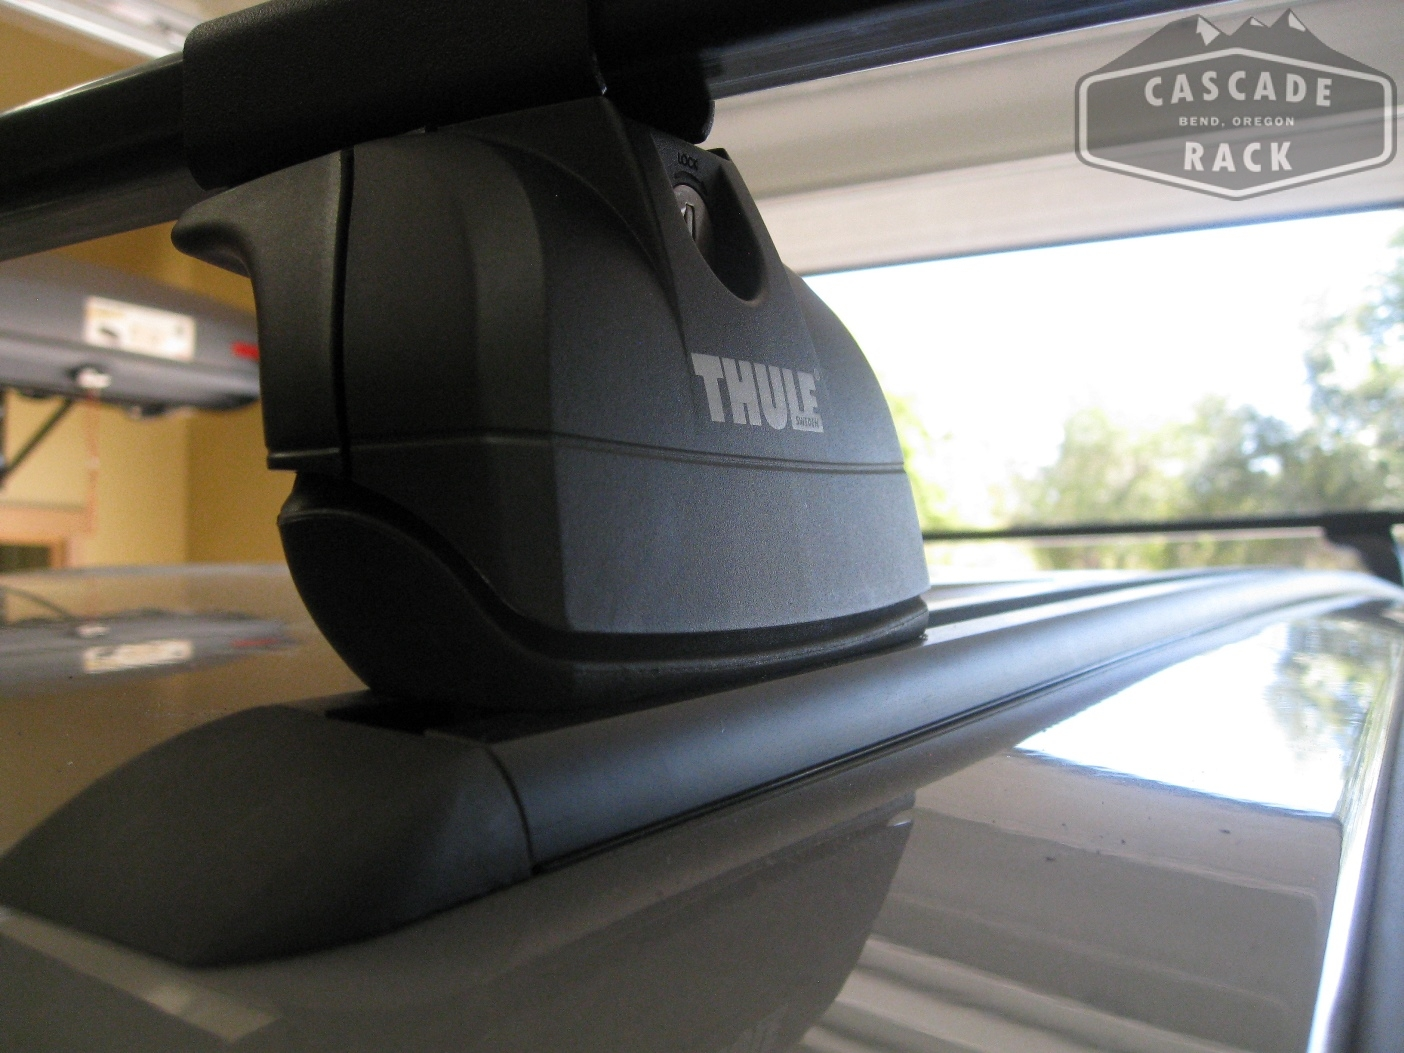 Thule - Custom Track and Base Rack Installation - 2014 Dodge Grand Caravan